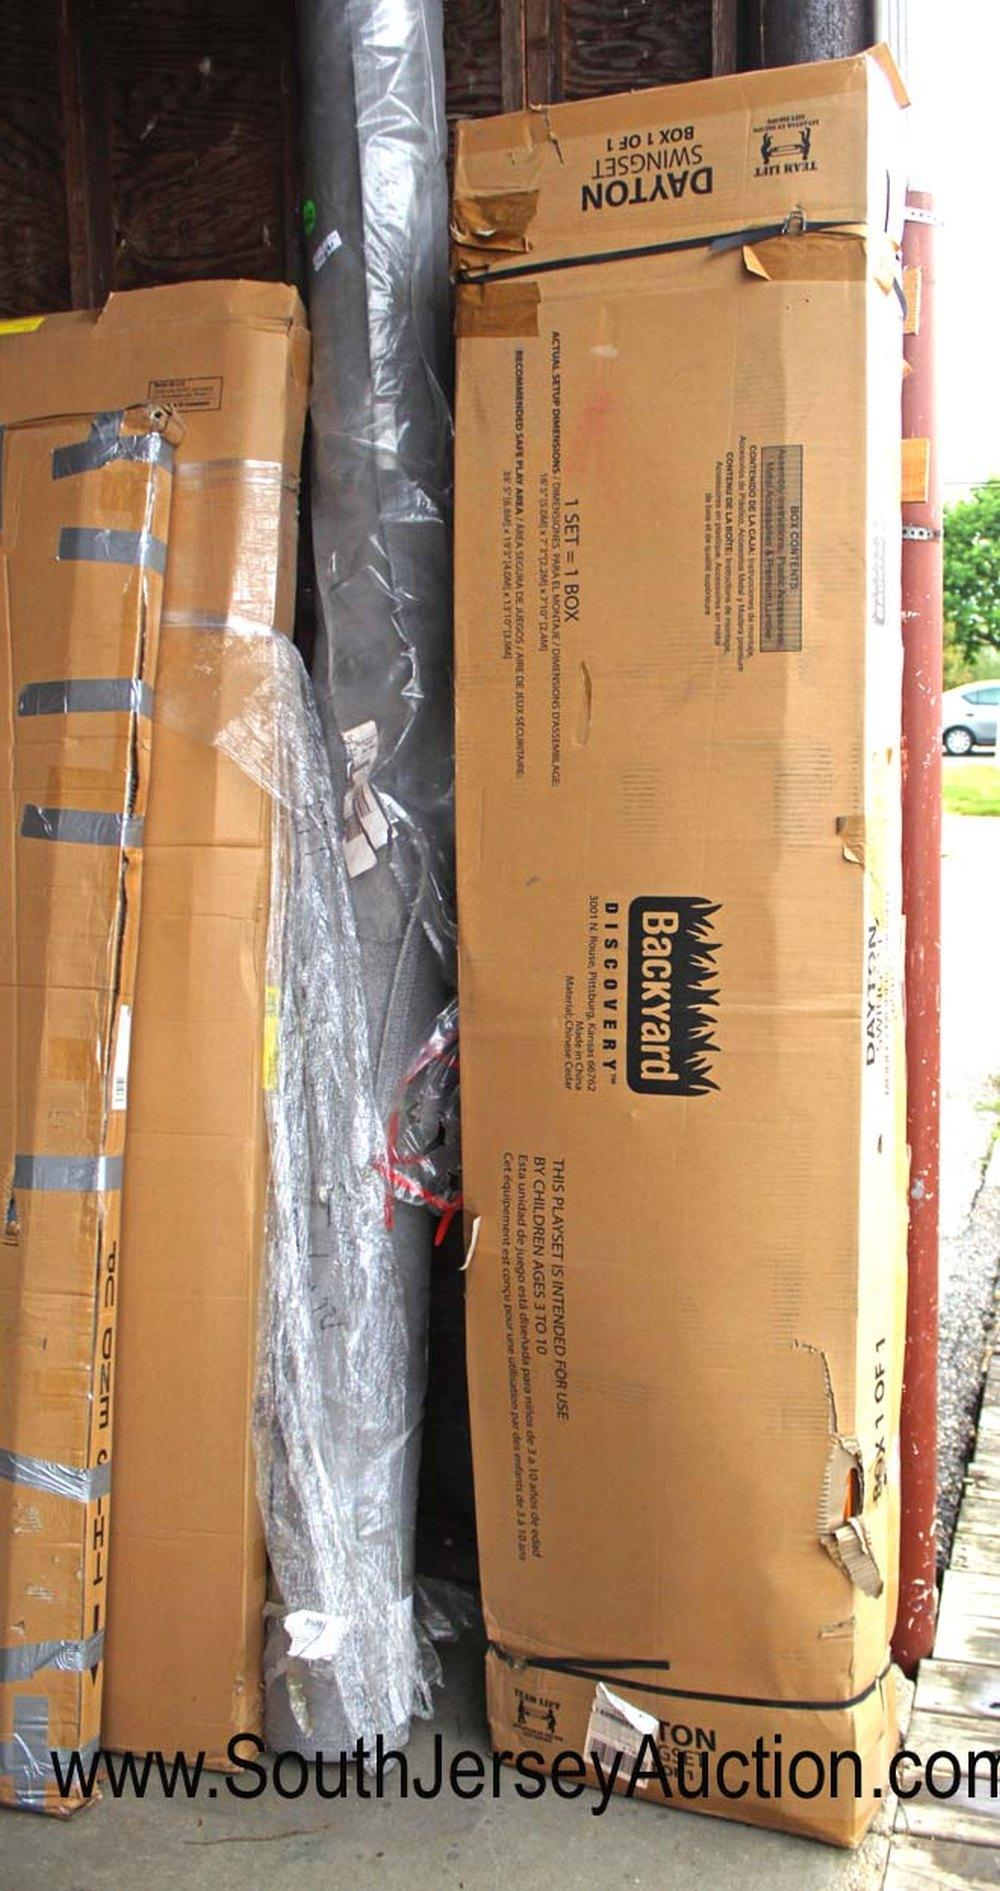 New Backyard Dayton Swing Set - In Box on Pallet Model #65014 - No Guarantee of all Parts or Damage